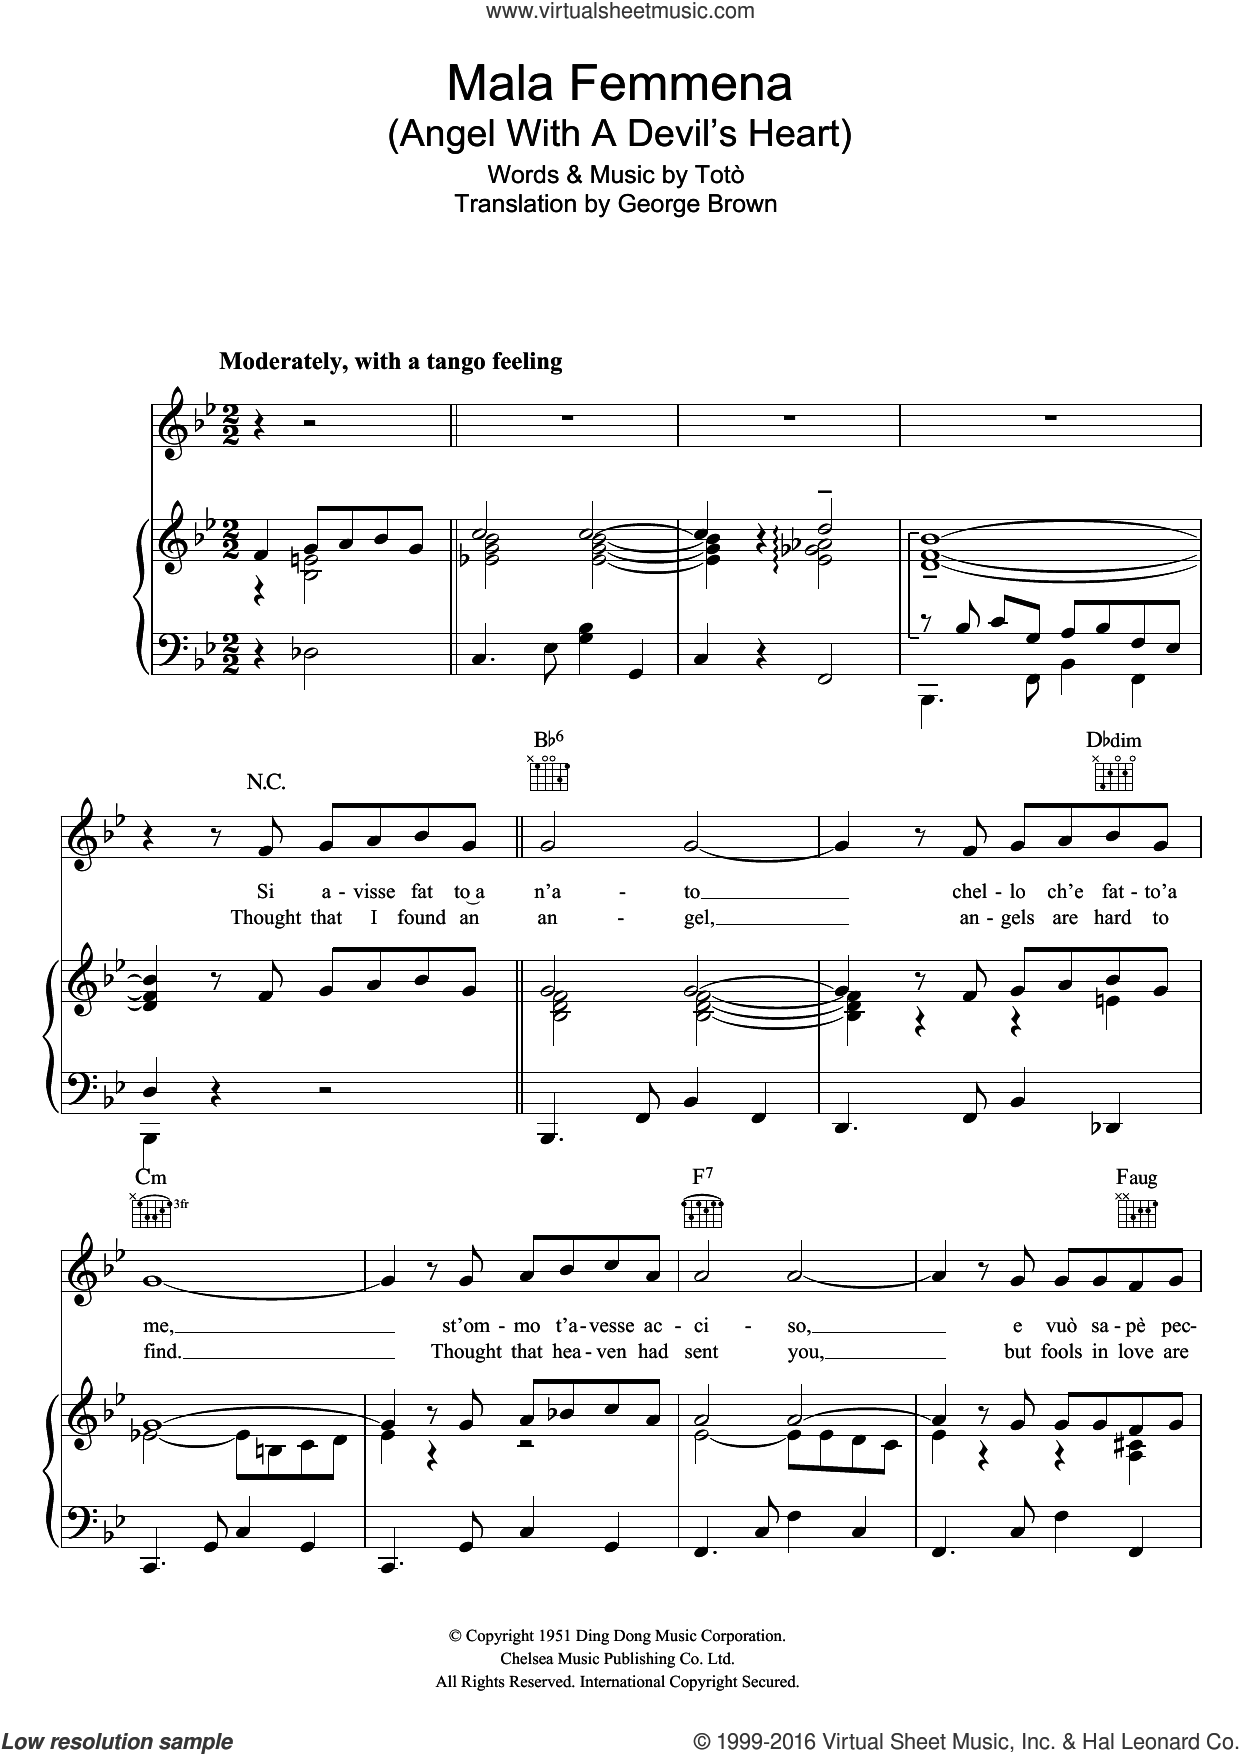 Mala Femmena sheet music for voice, piano or guitar by Connie Francis, George Brown and Toto. Score Image Preview.